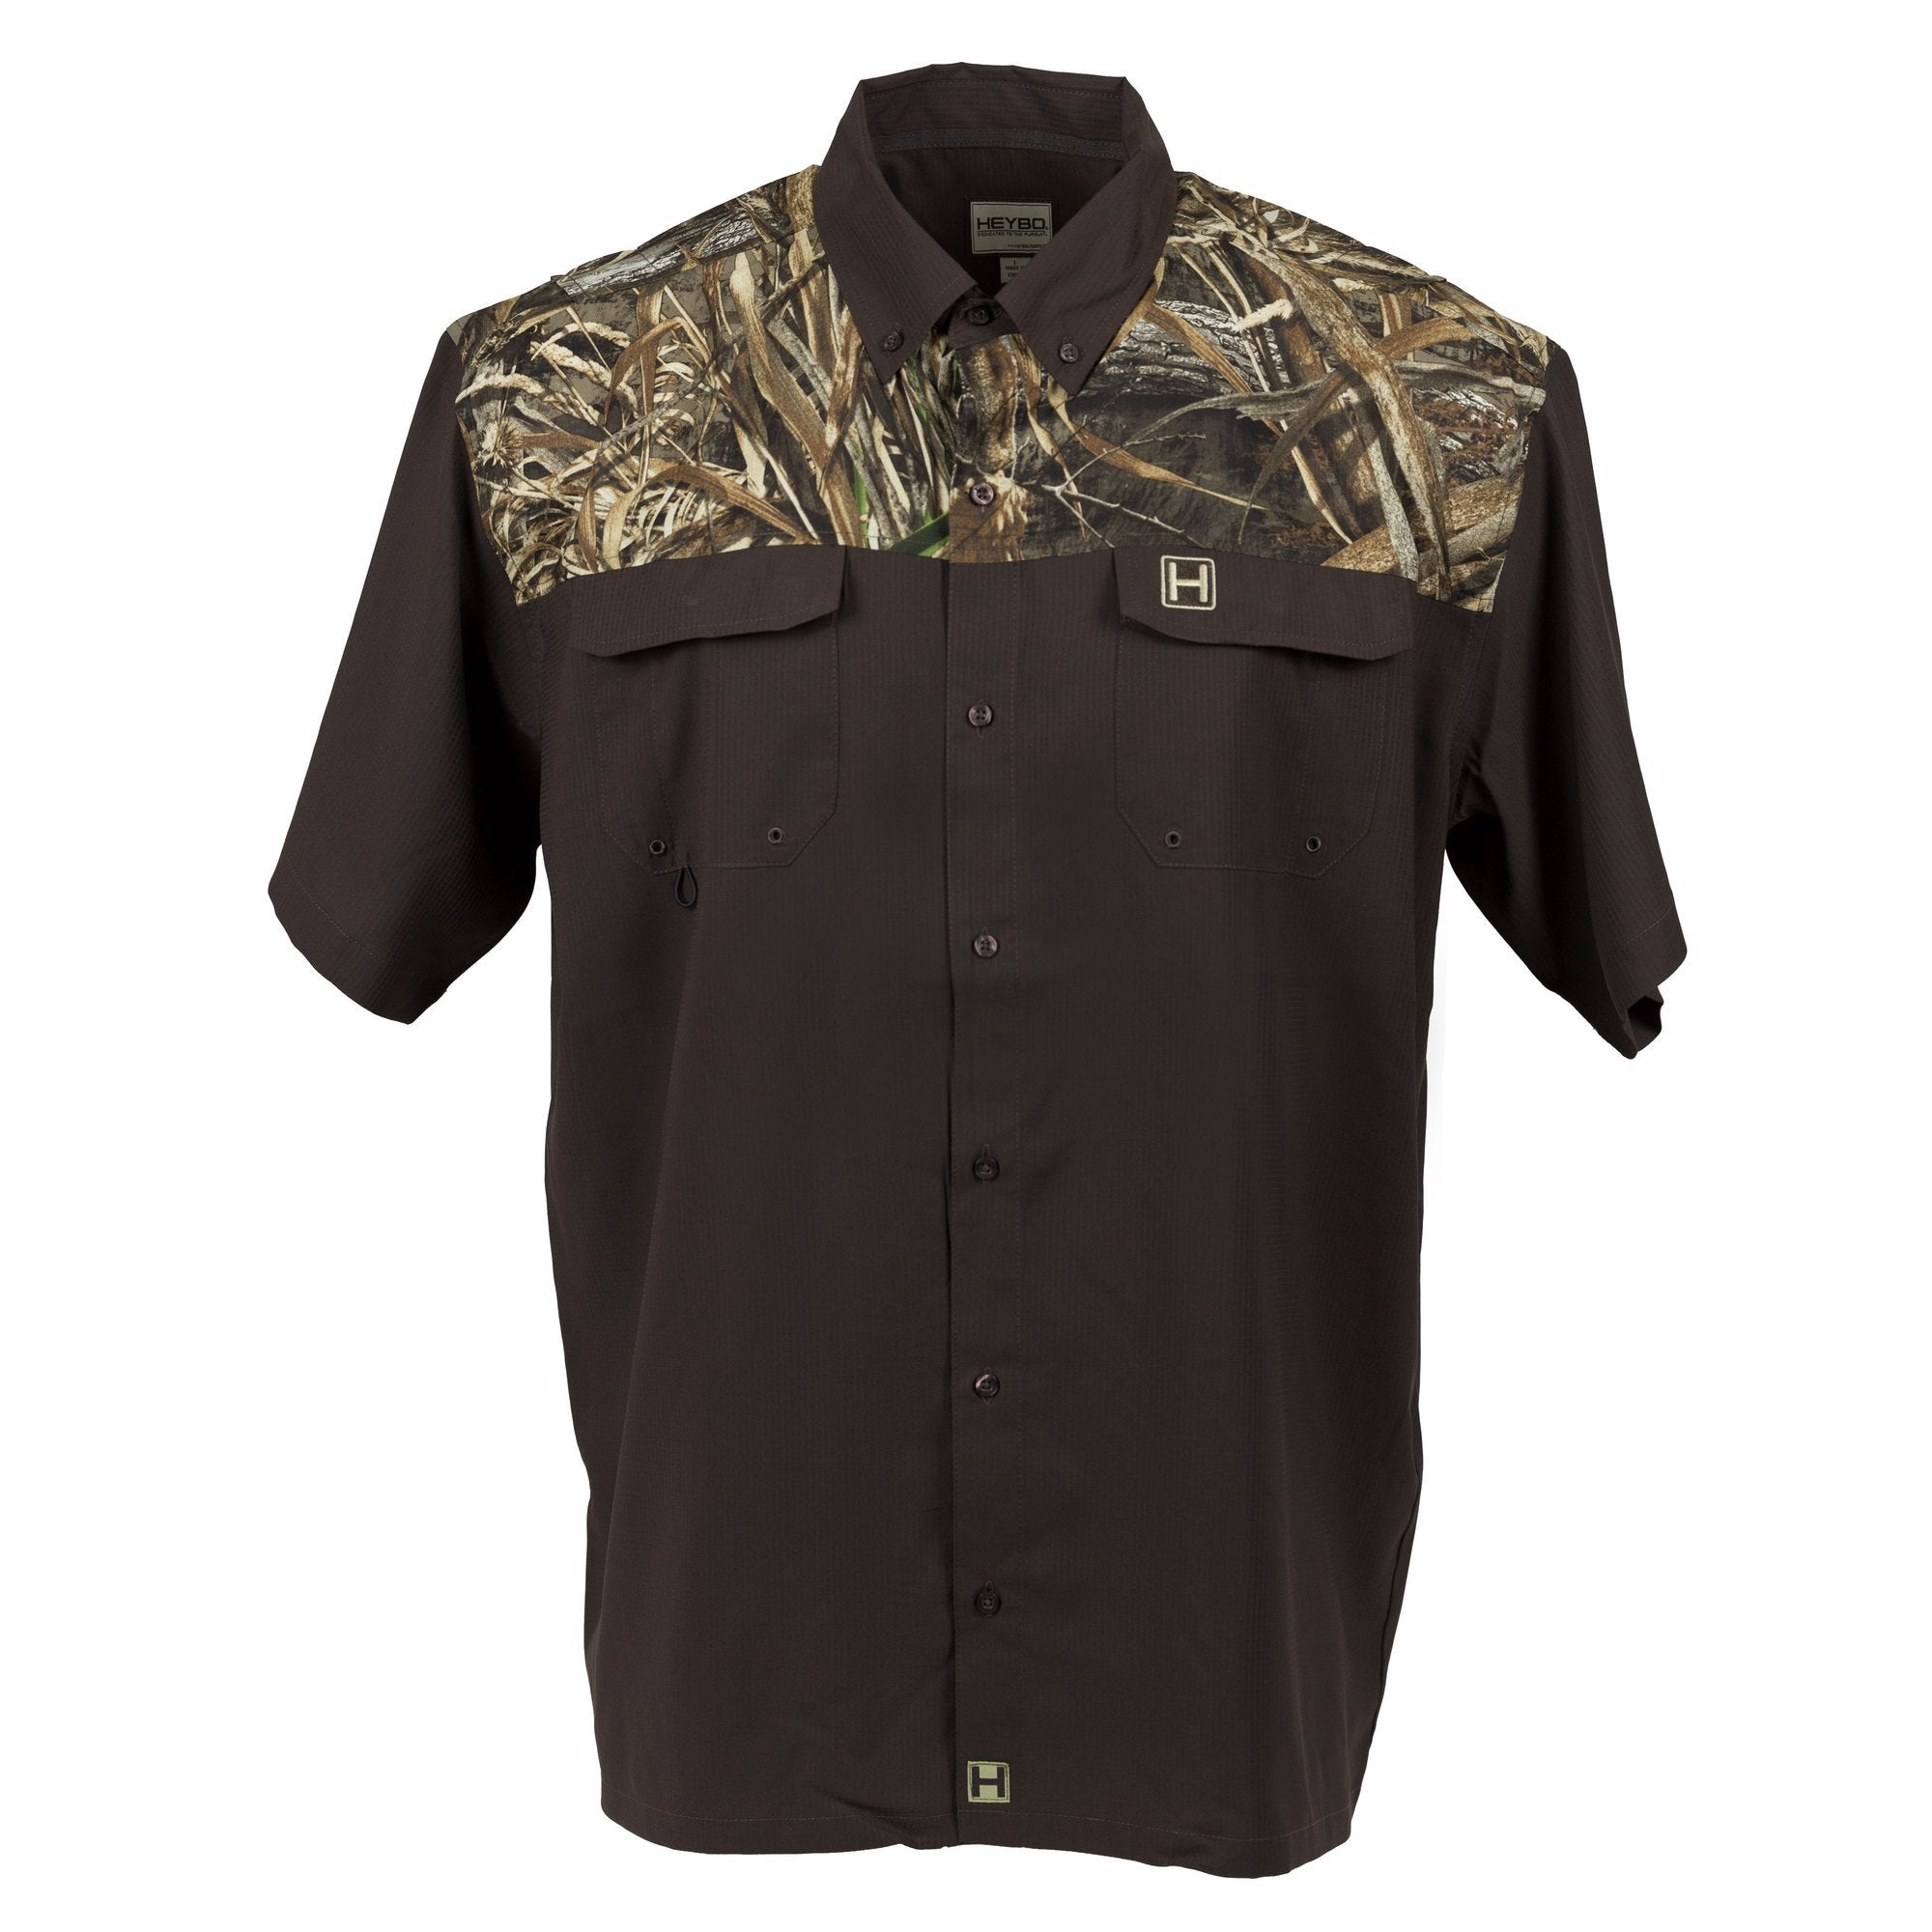 Outfitter Shirt-Max 5 Camo